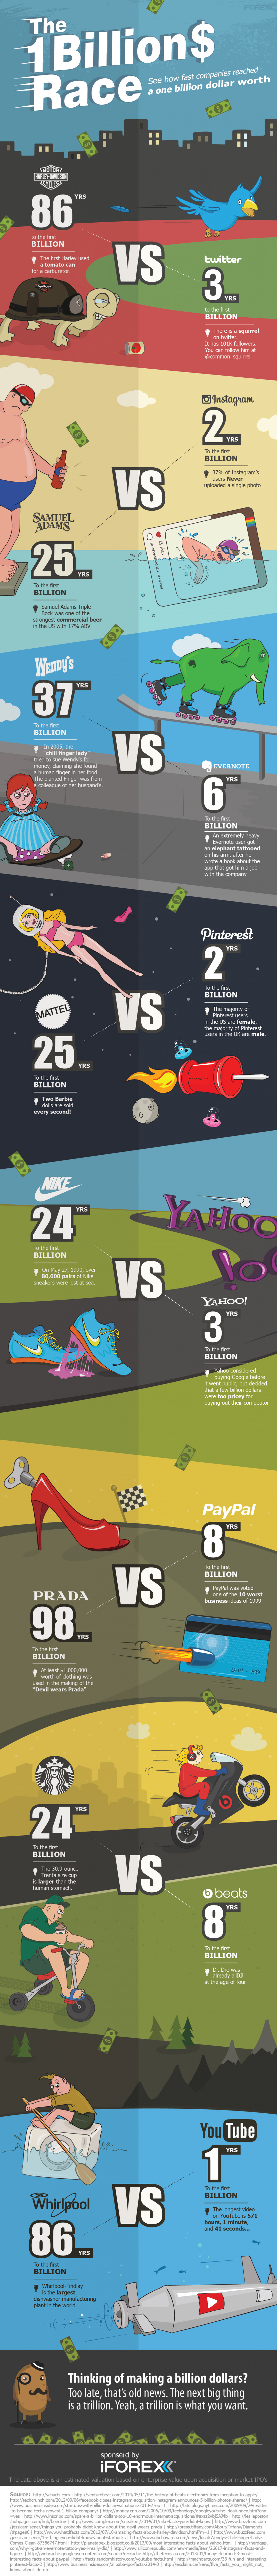 The One Billion Dollar Race Infographic